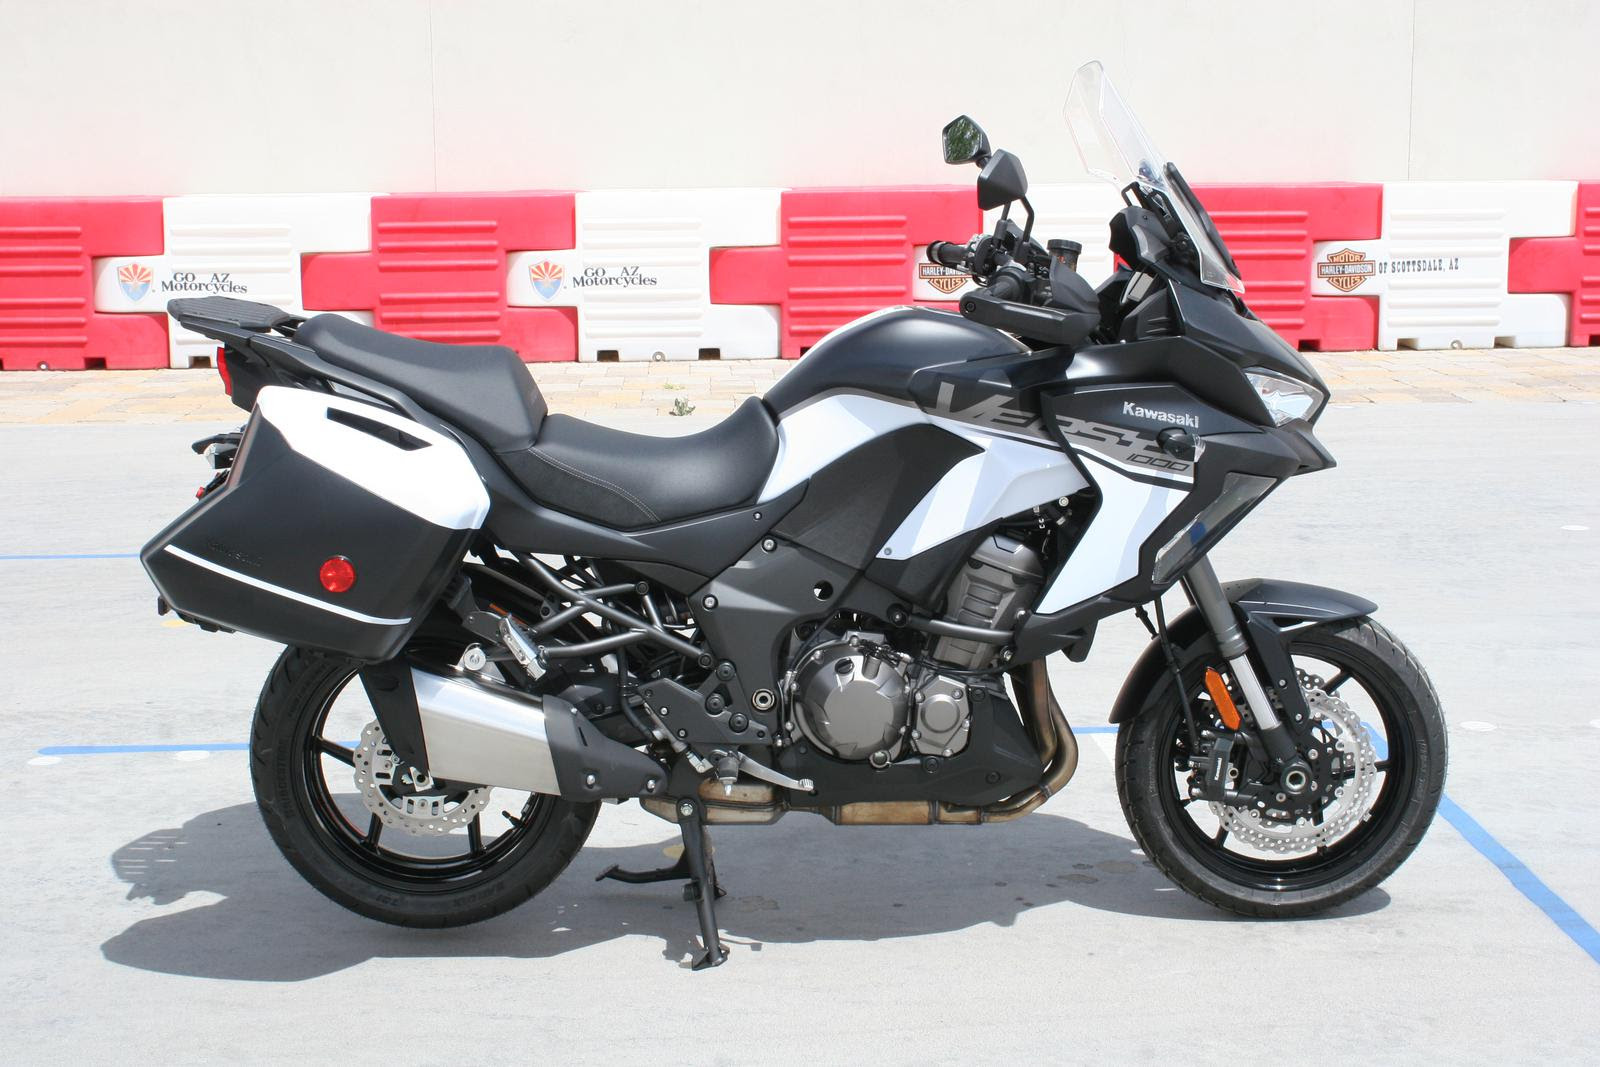 2019 Kawasaki Versys 1000 Se Lt For Sale In Scottsdale Az